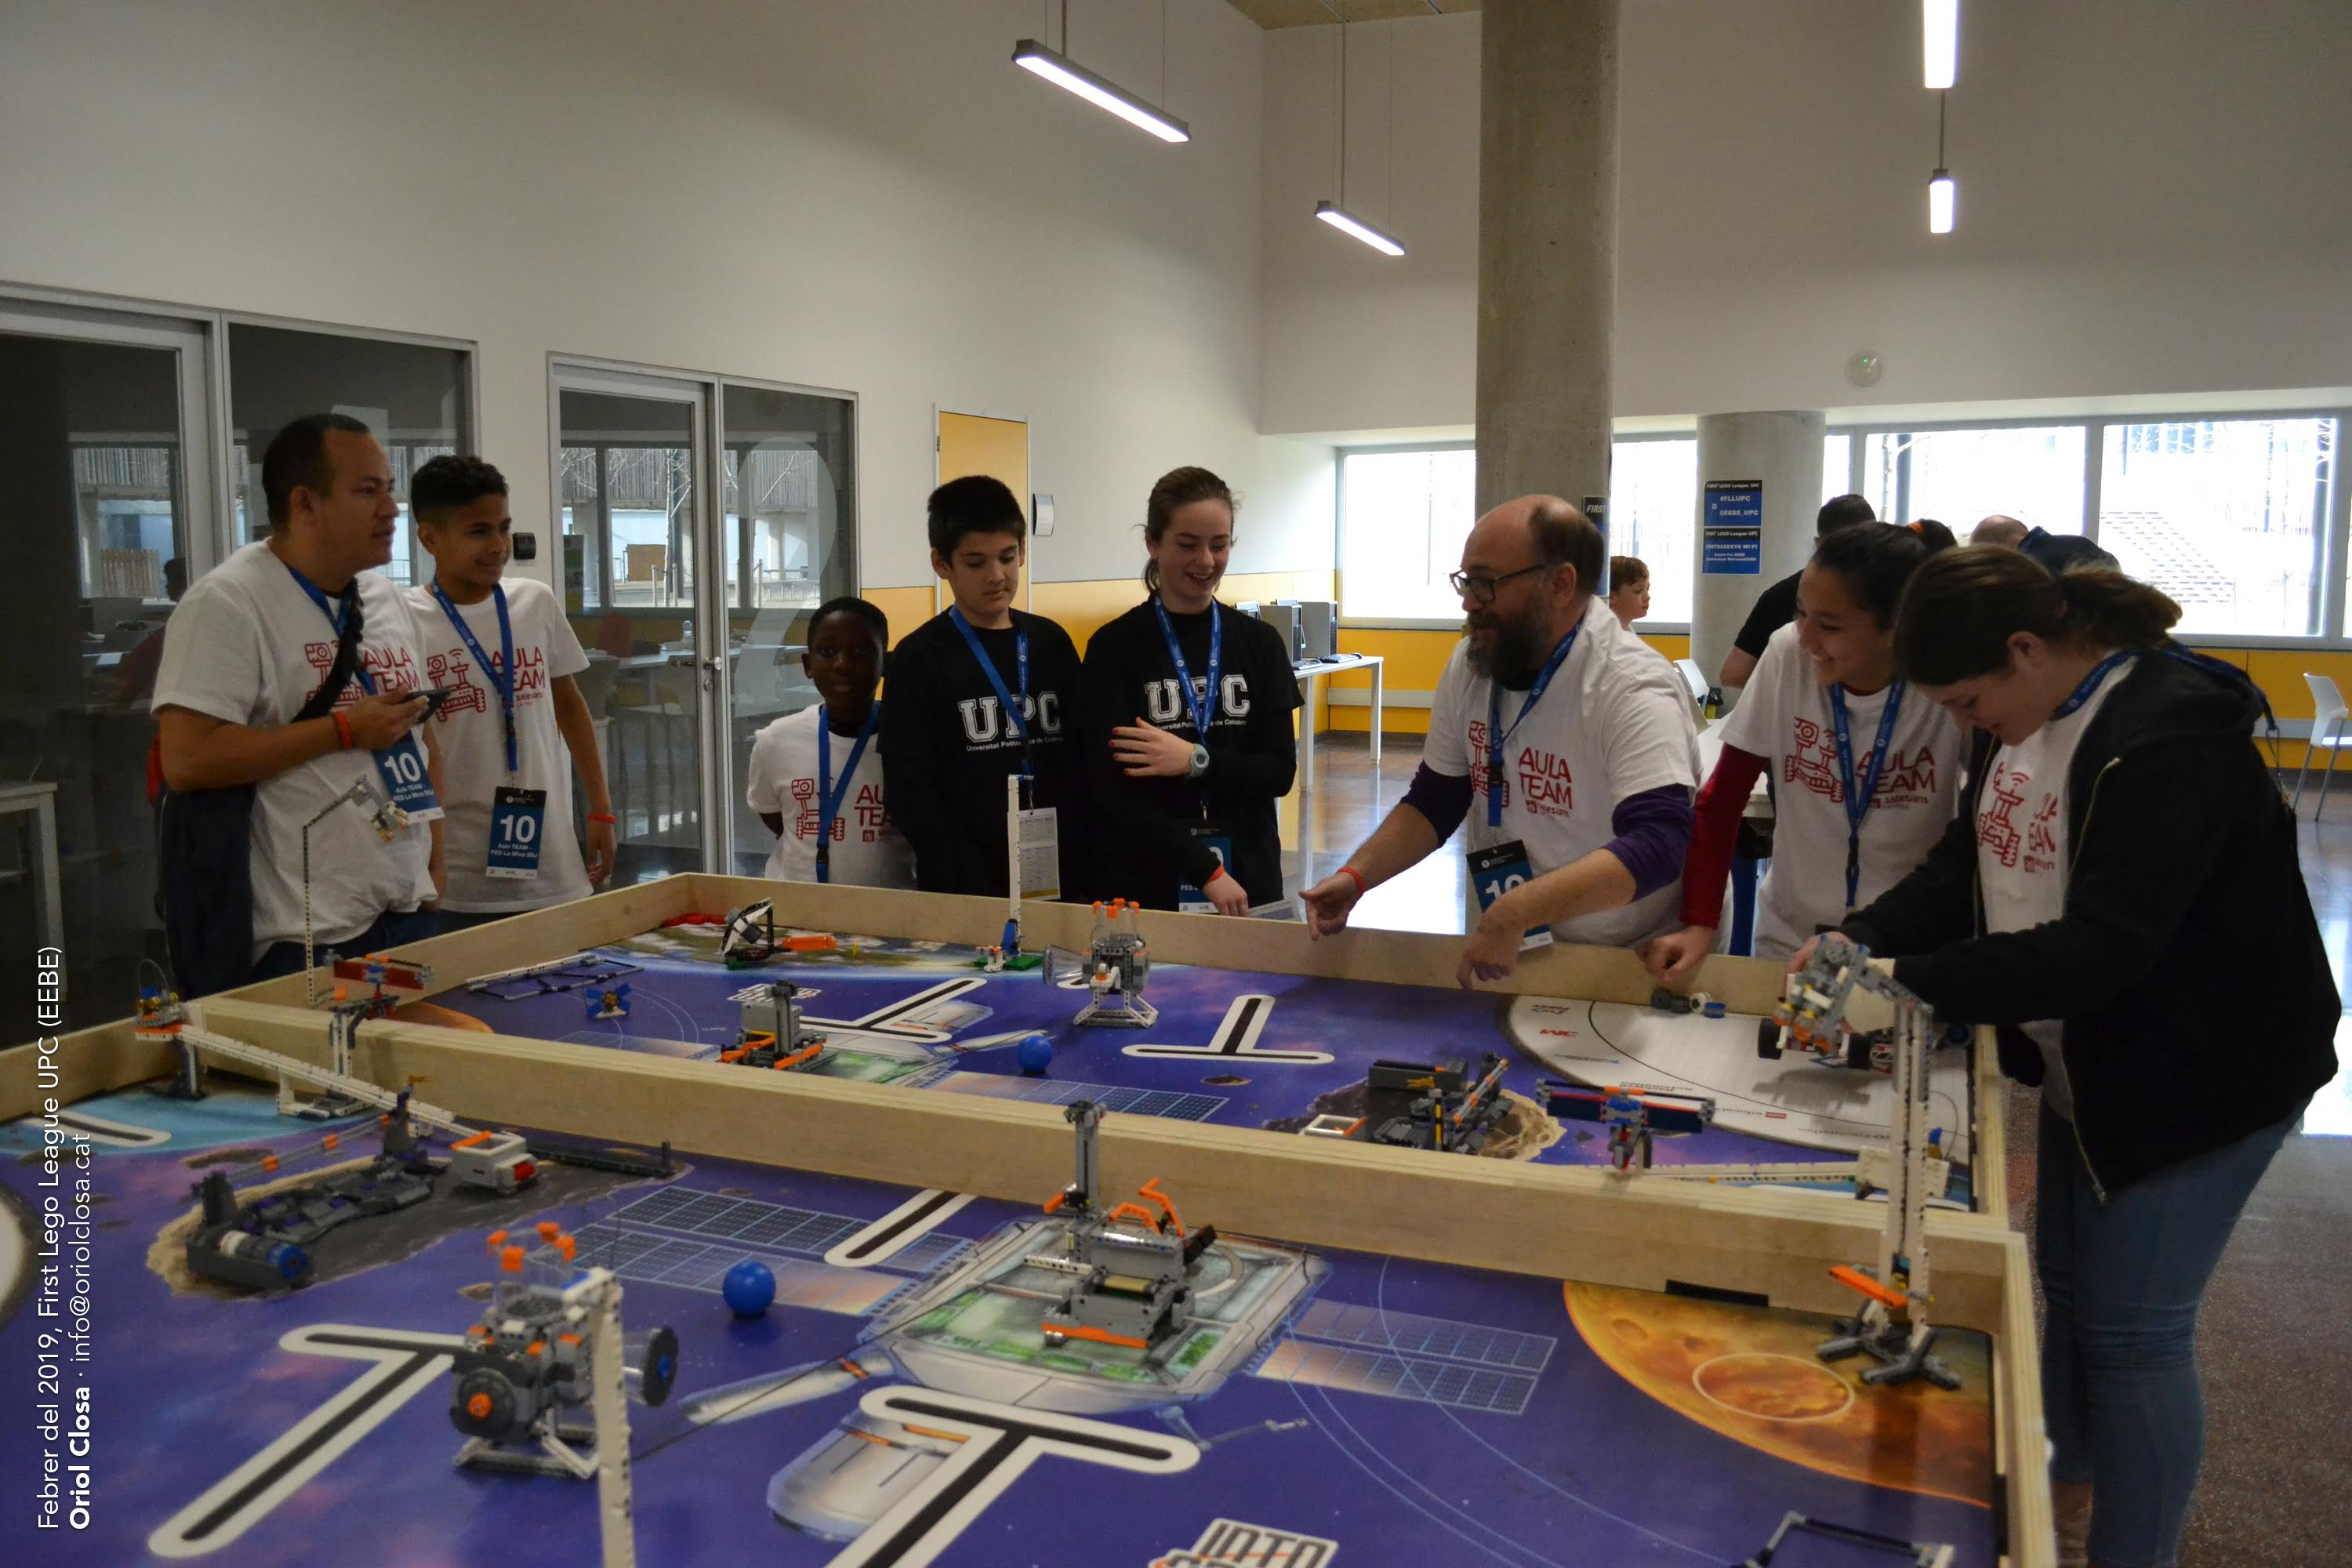 Imatge del torneig First Lego League